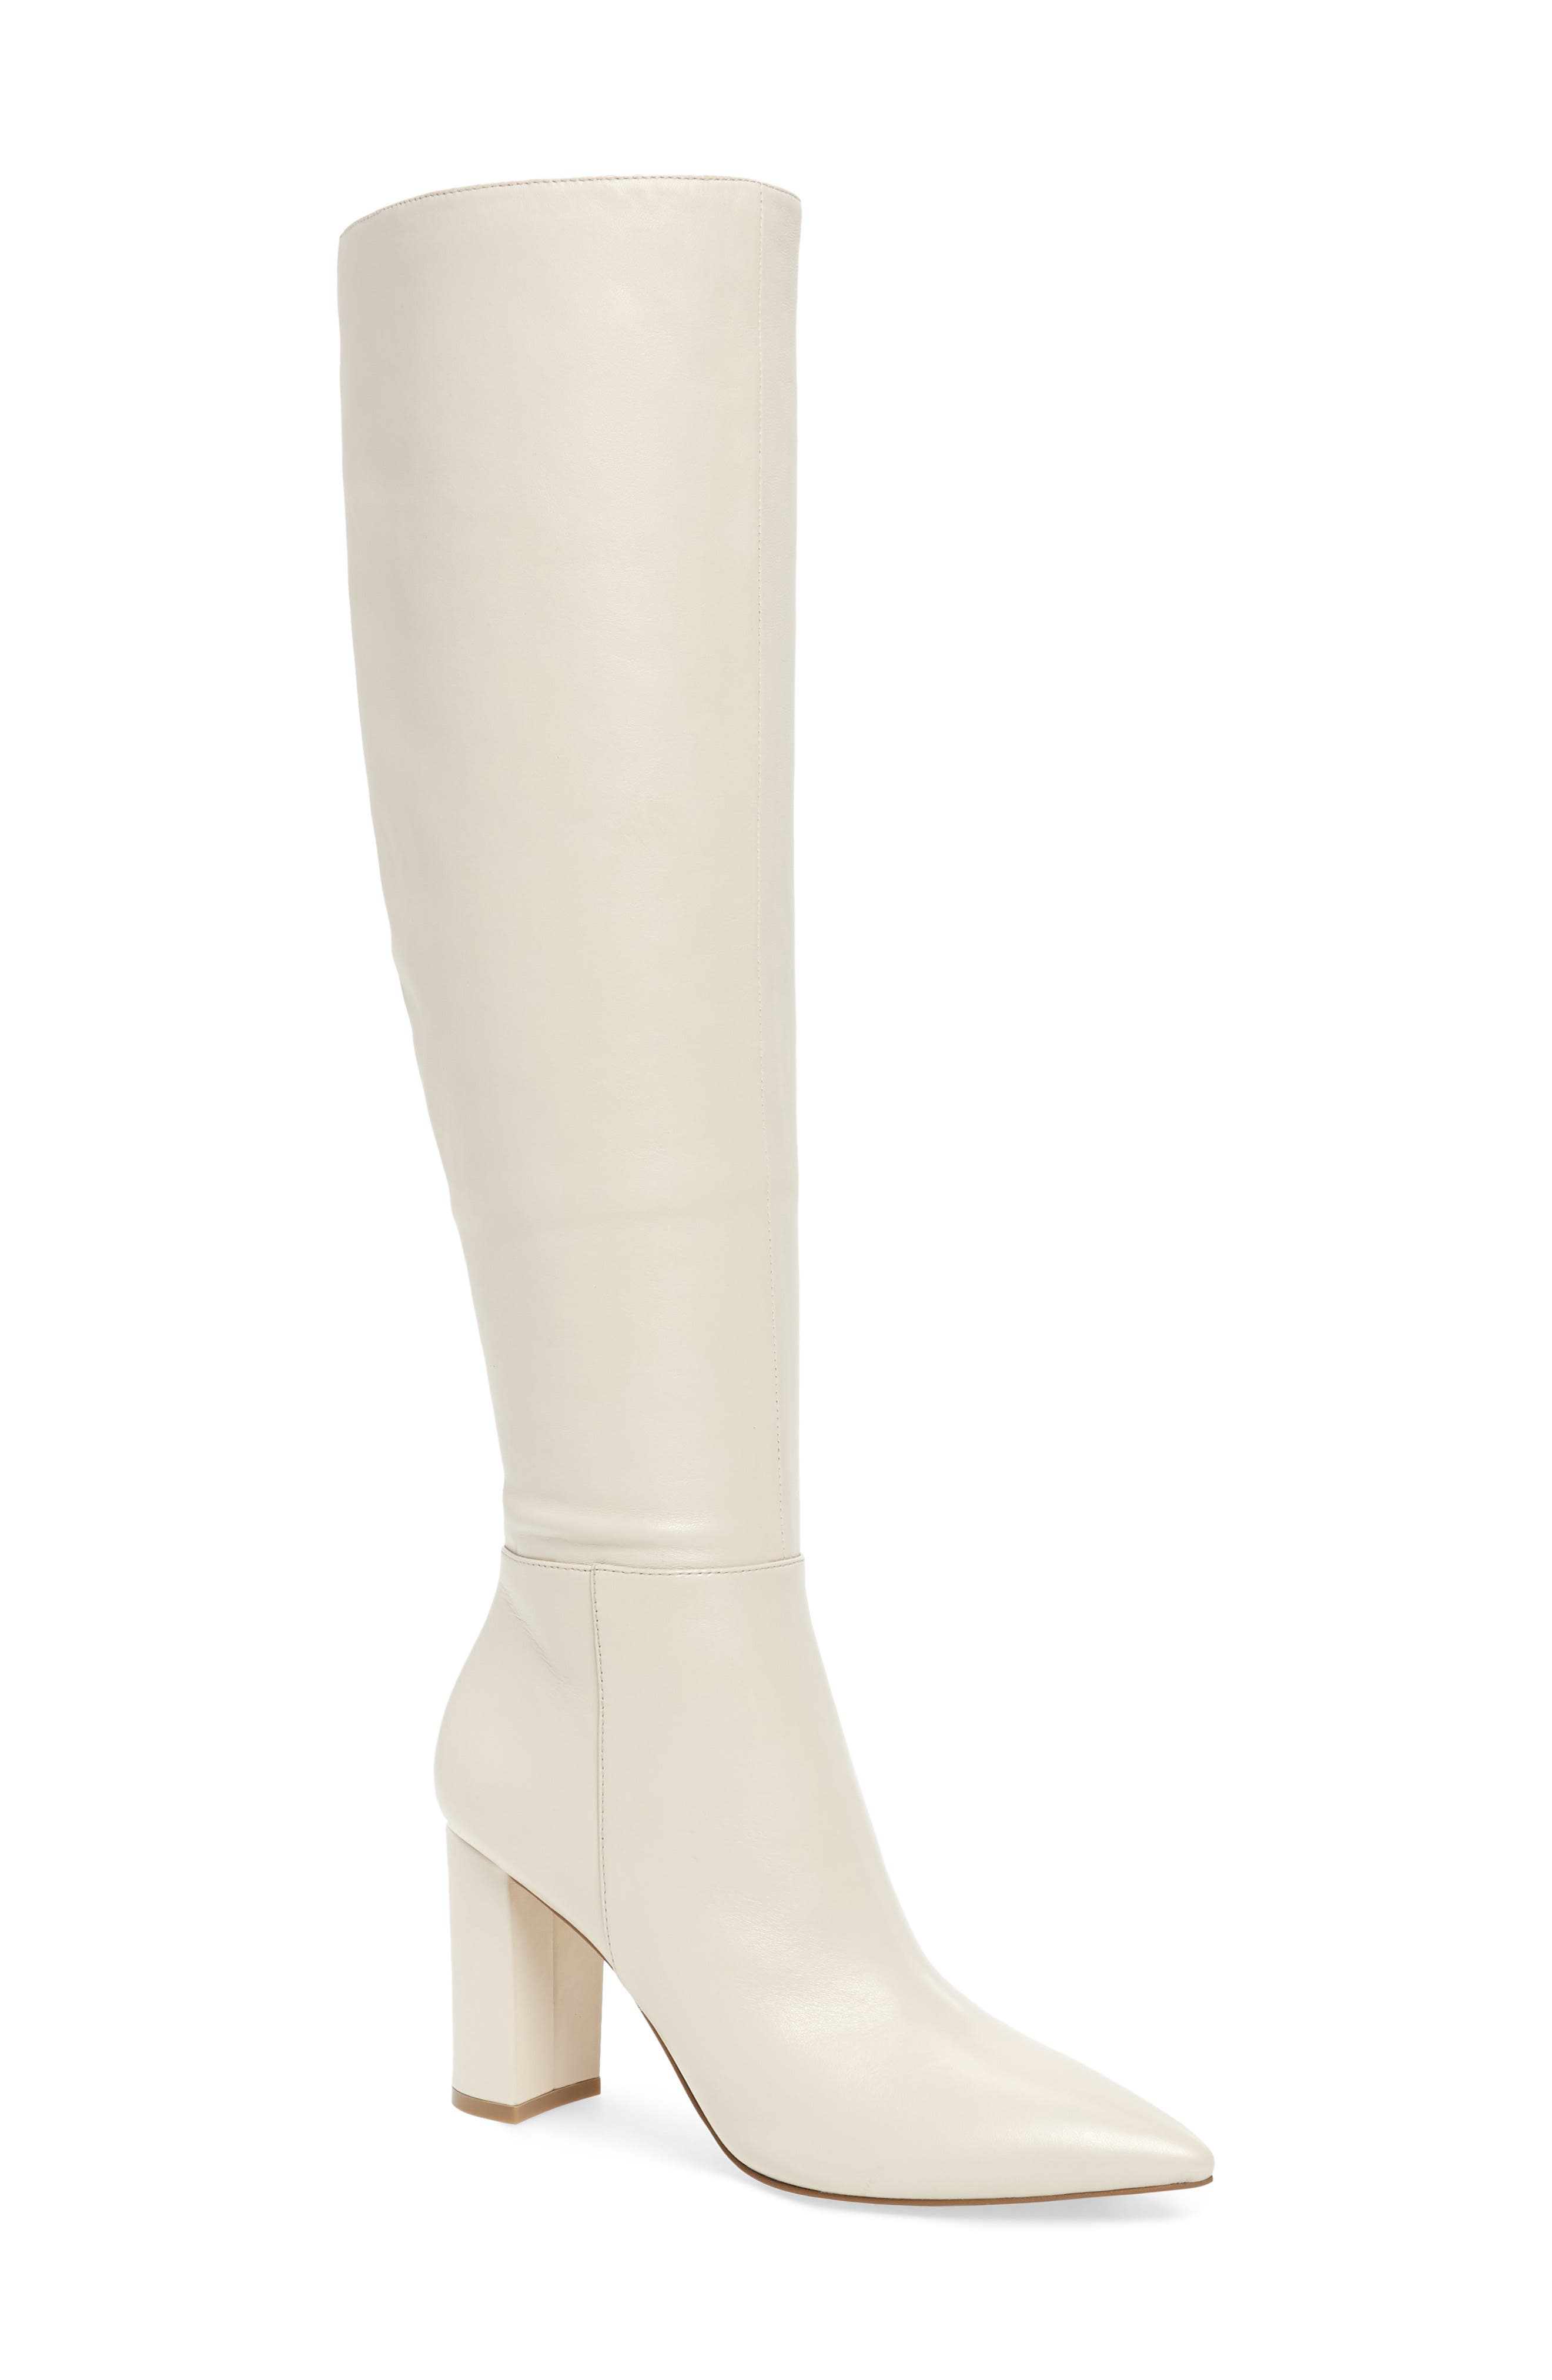 bfa49b5e3d8 How to Buy AquaDiva Ivey Waterproof Knee High Boot (Women ...